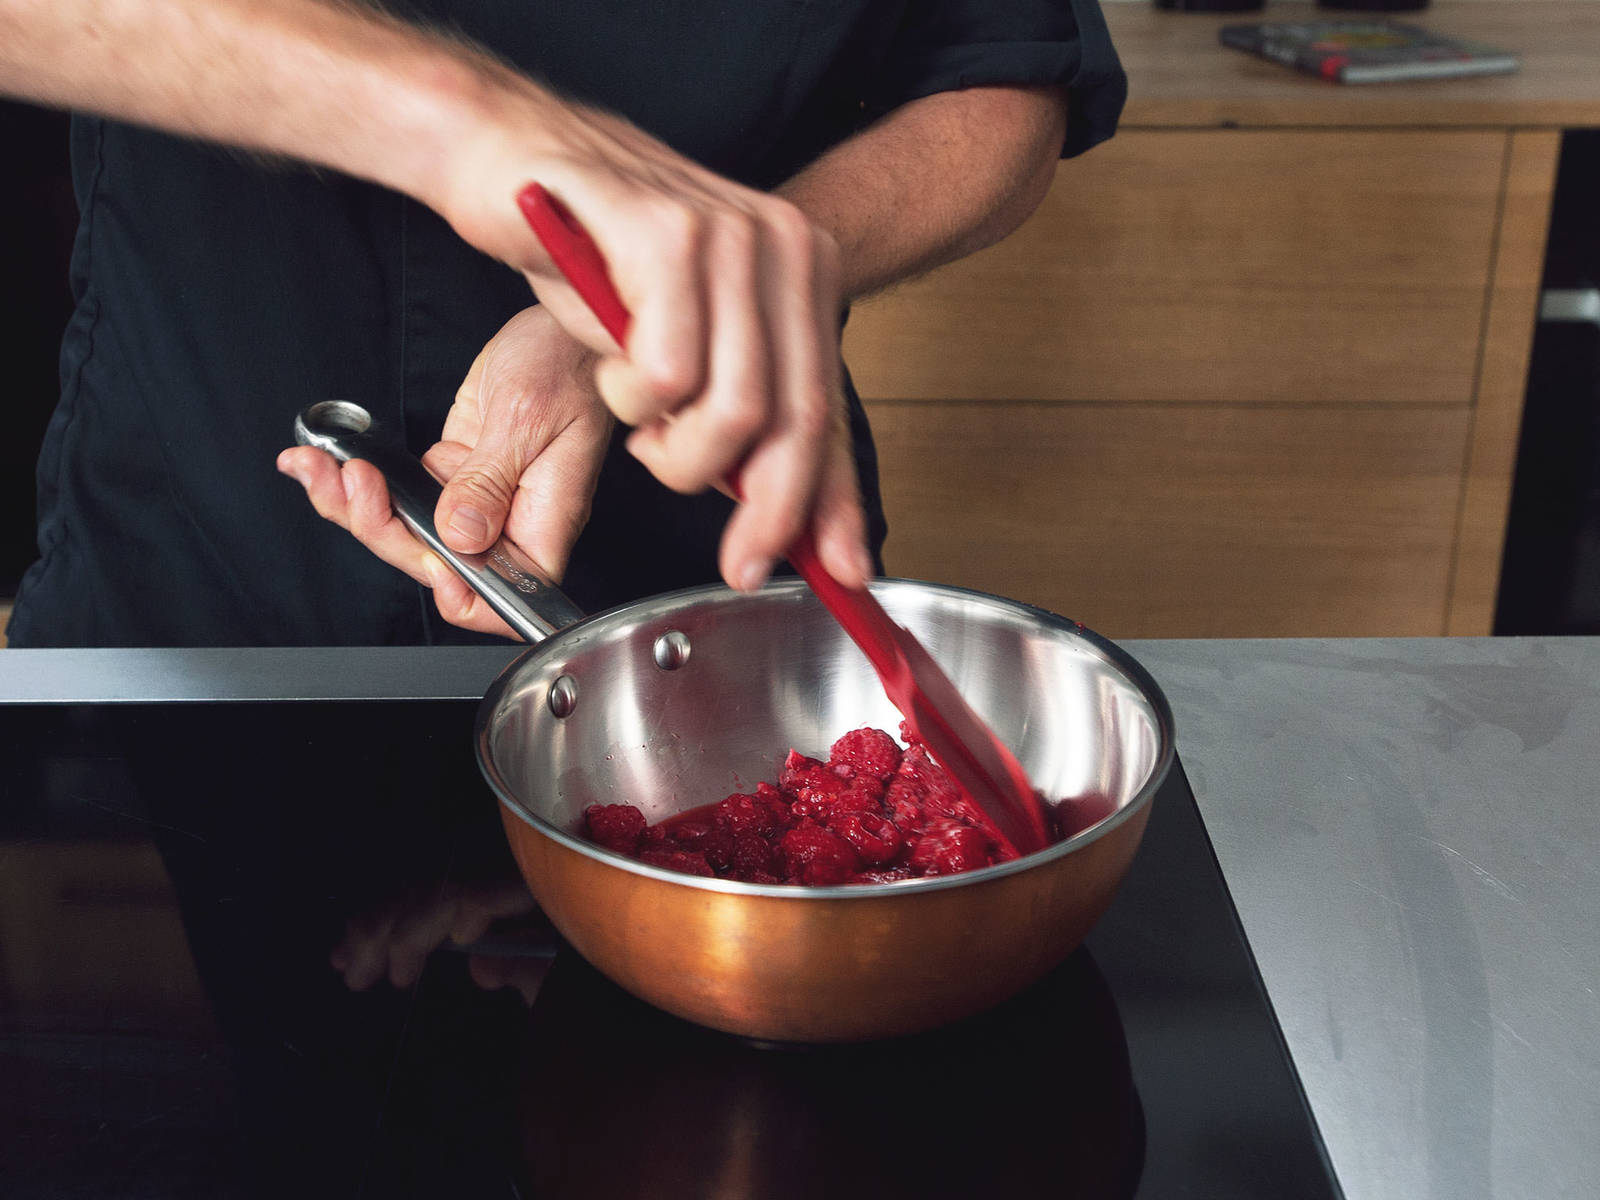 Add two-thirds of the raspberries to a small saucepan and bring to a boil over medium-high heat to defrost.